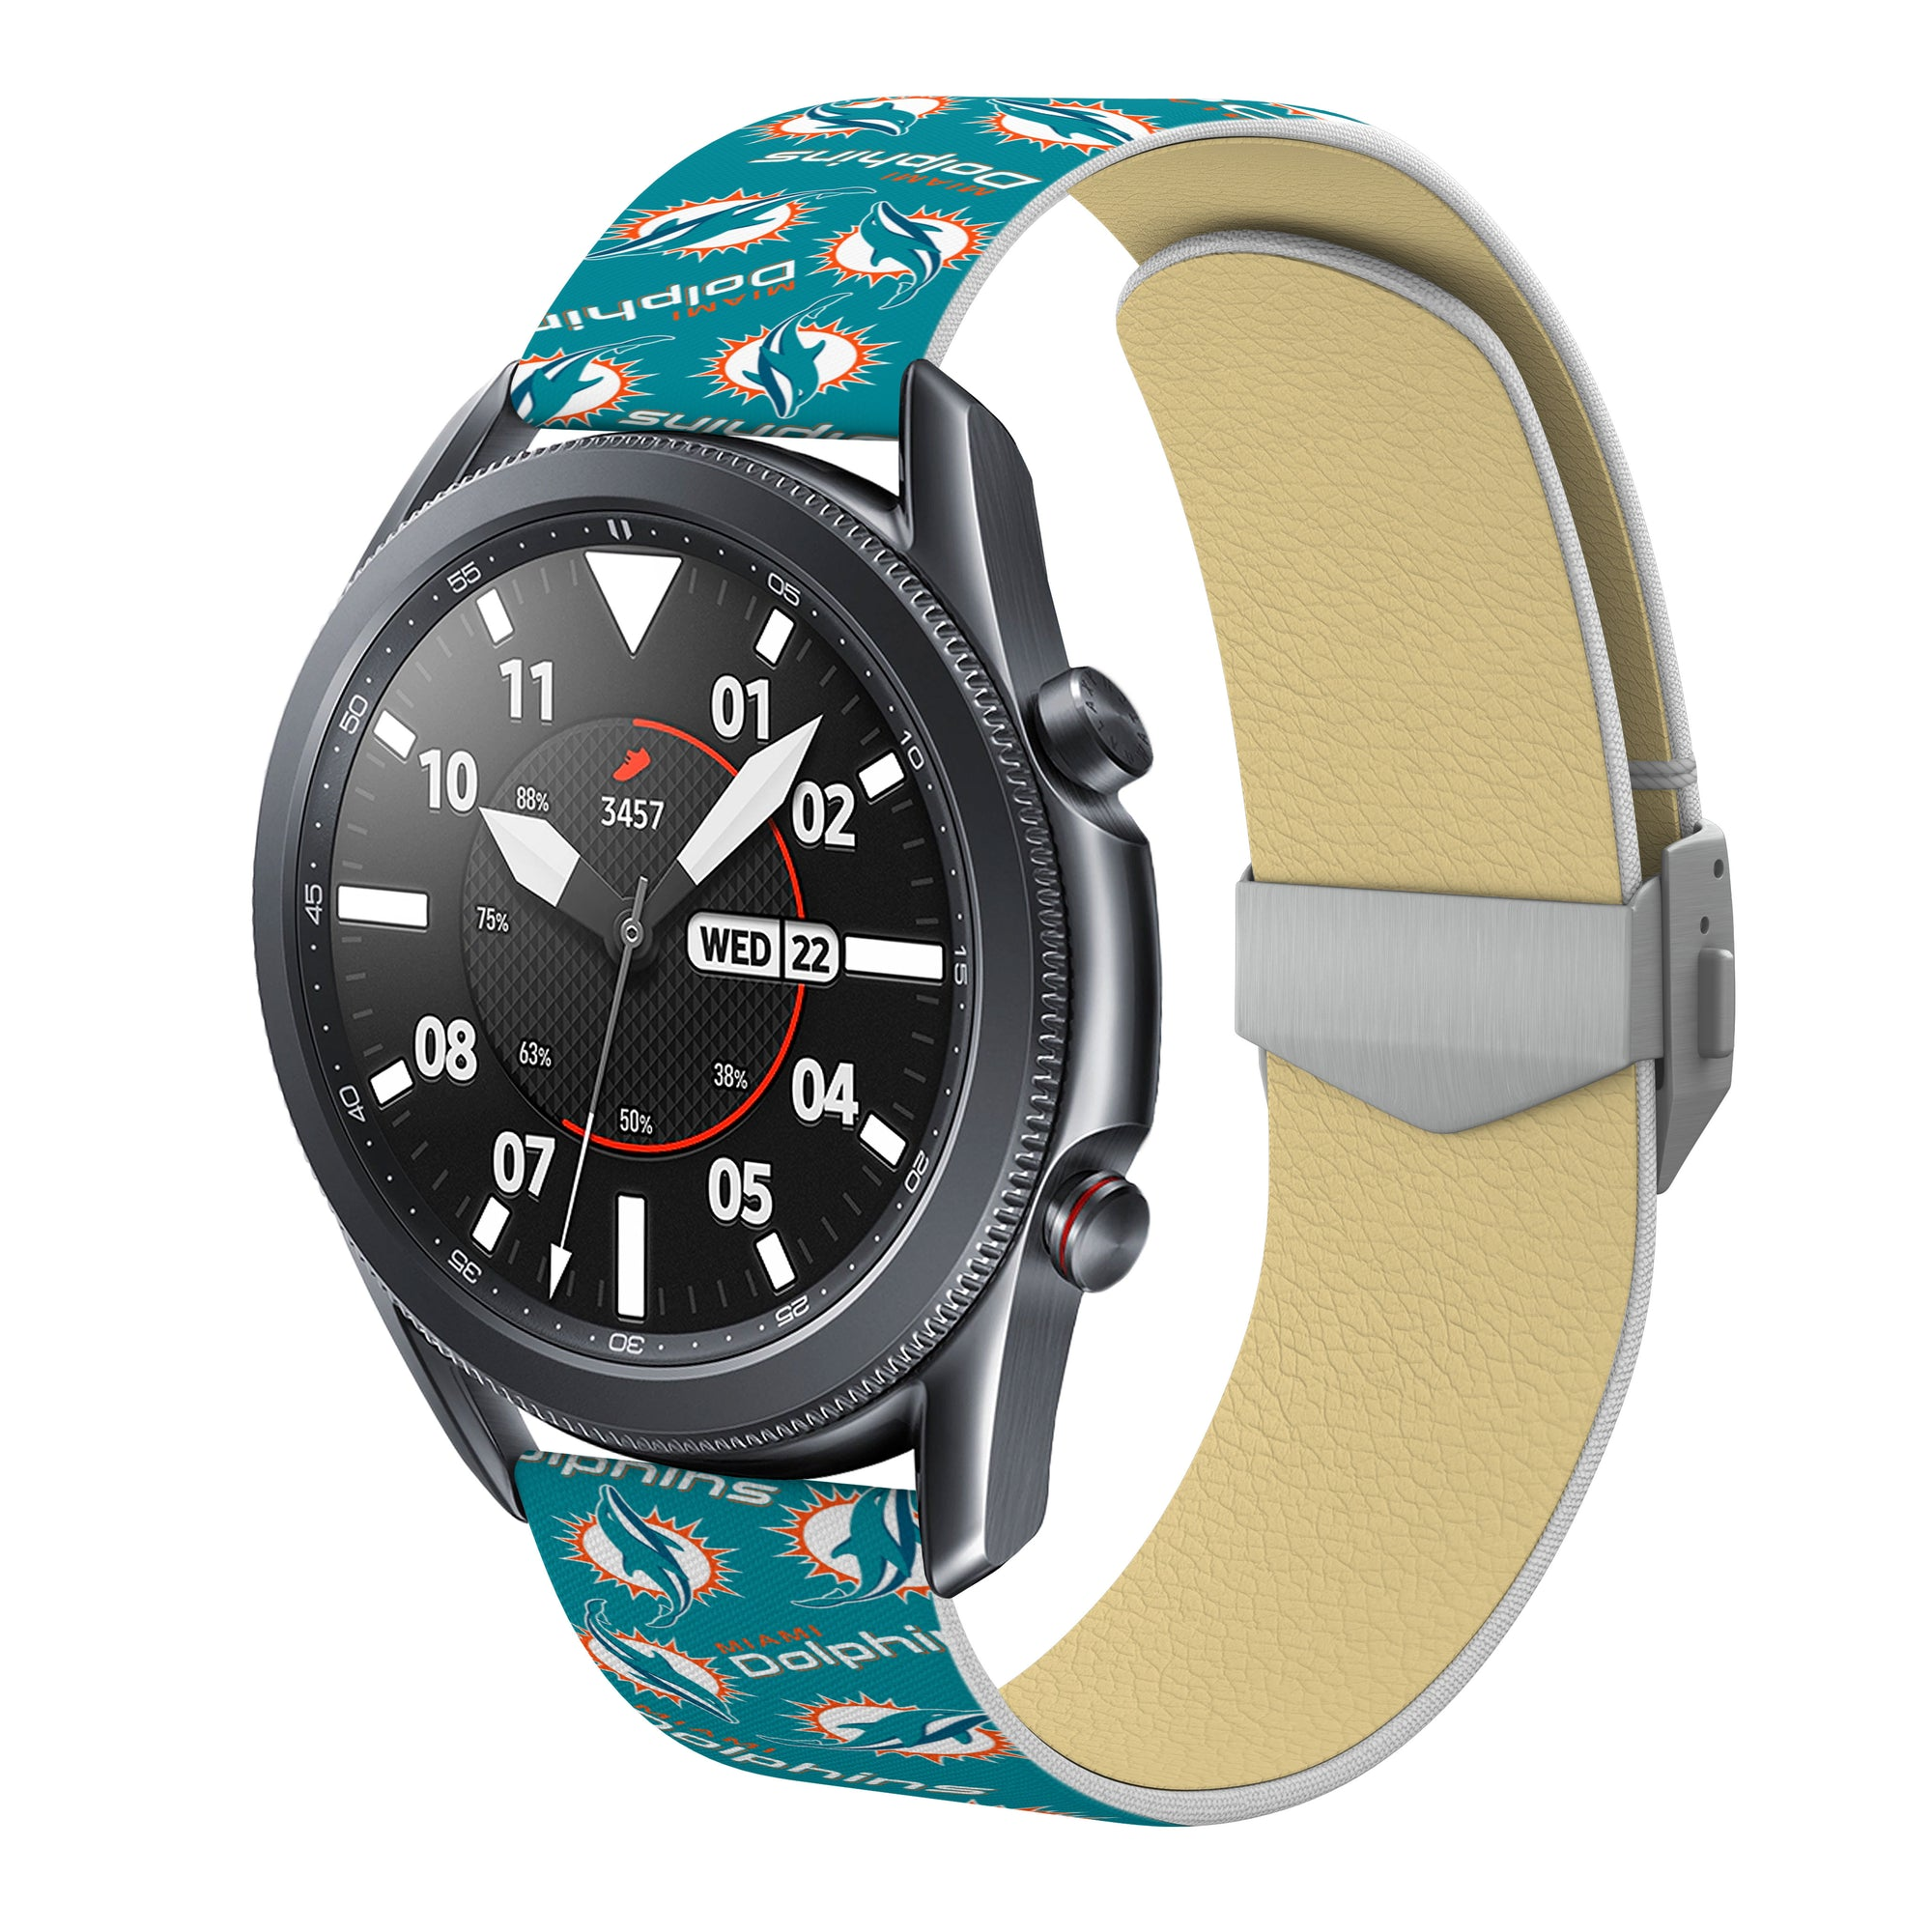 Miami Dolphins Full Print Quick change Watch Band With Engraved Buckle - AffinityBands